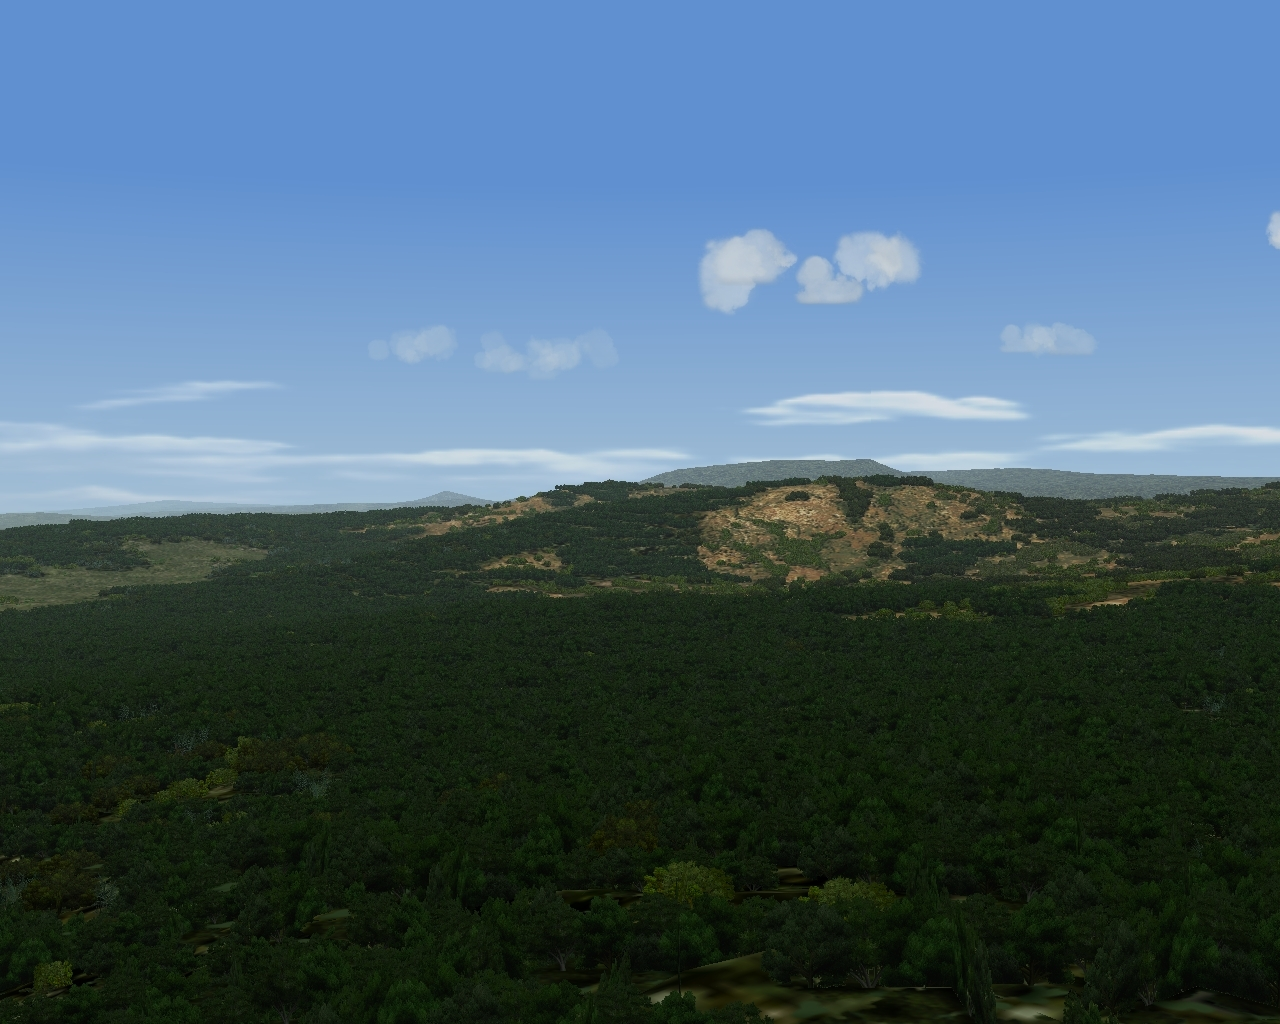 Madagascar jungle, sparse rocks coverage in the background